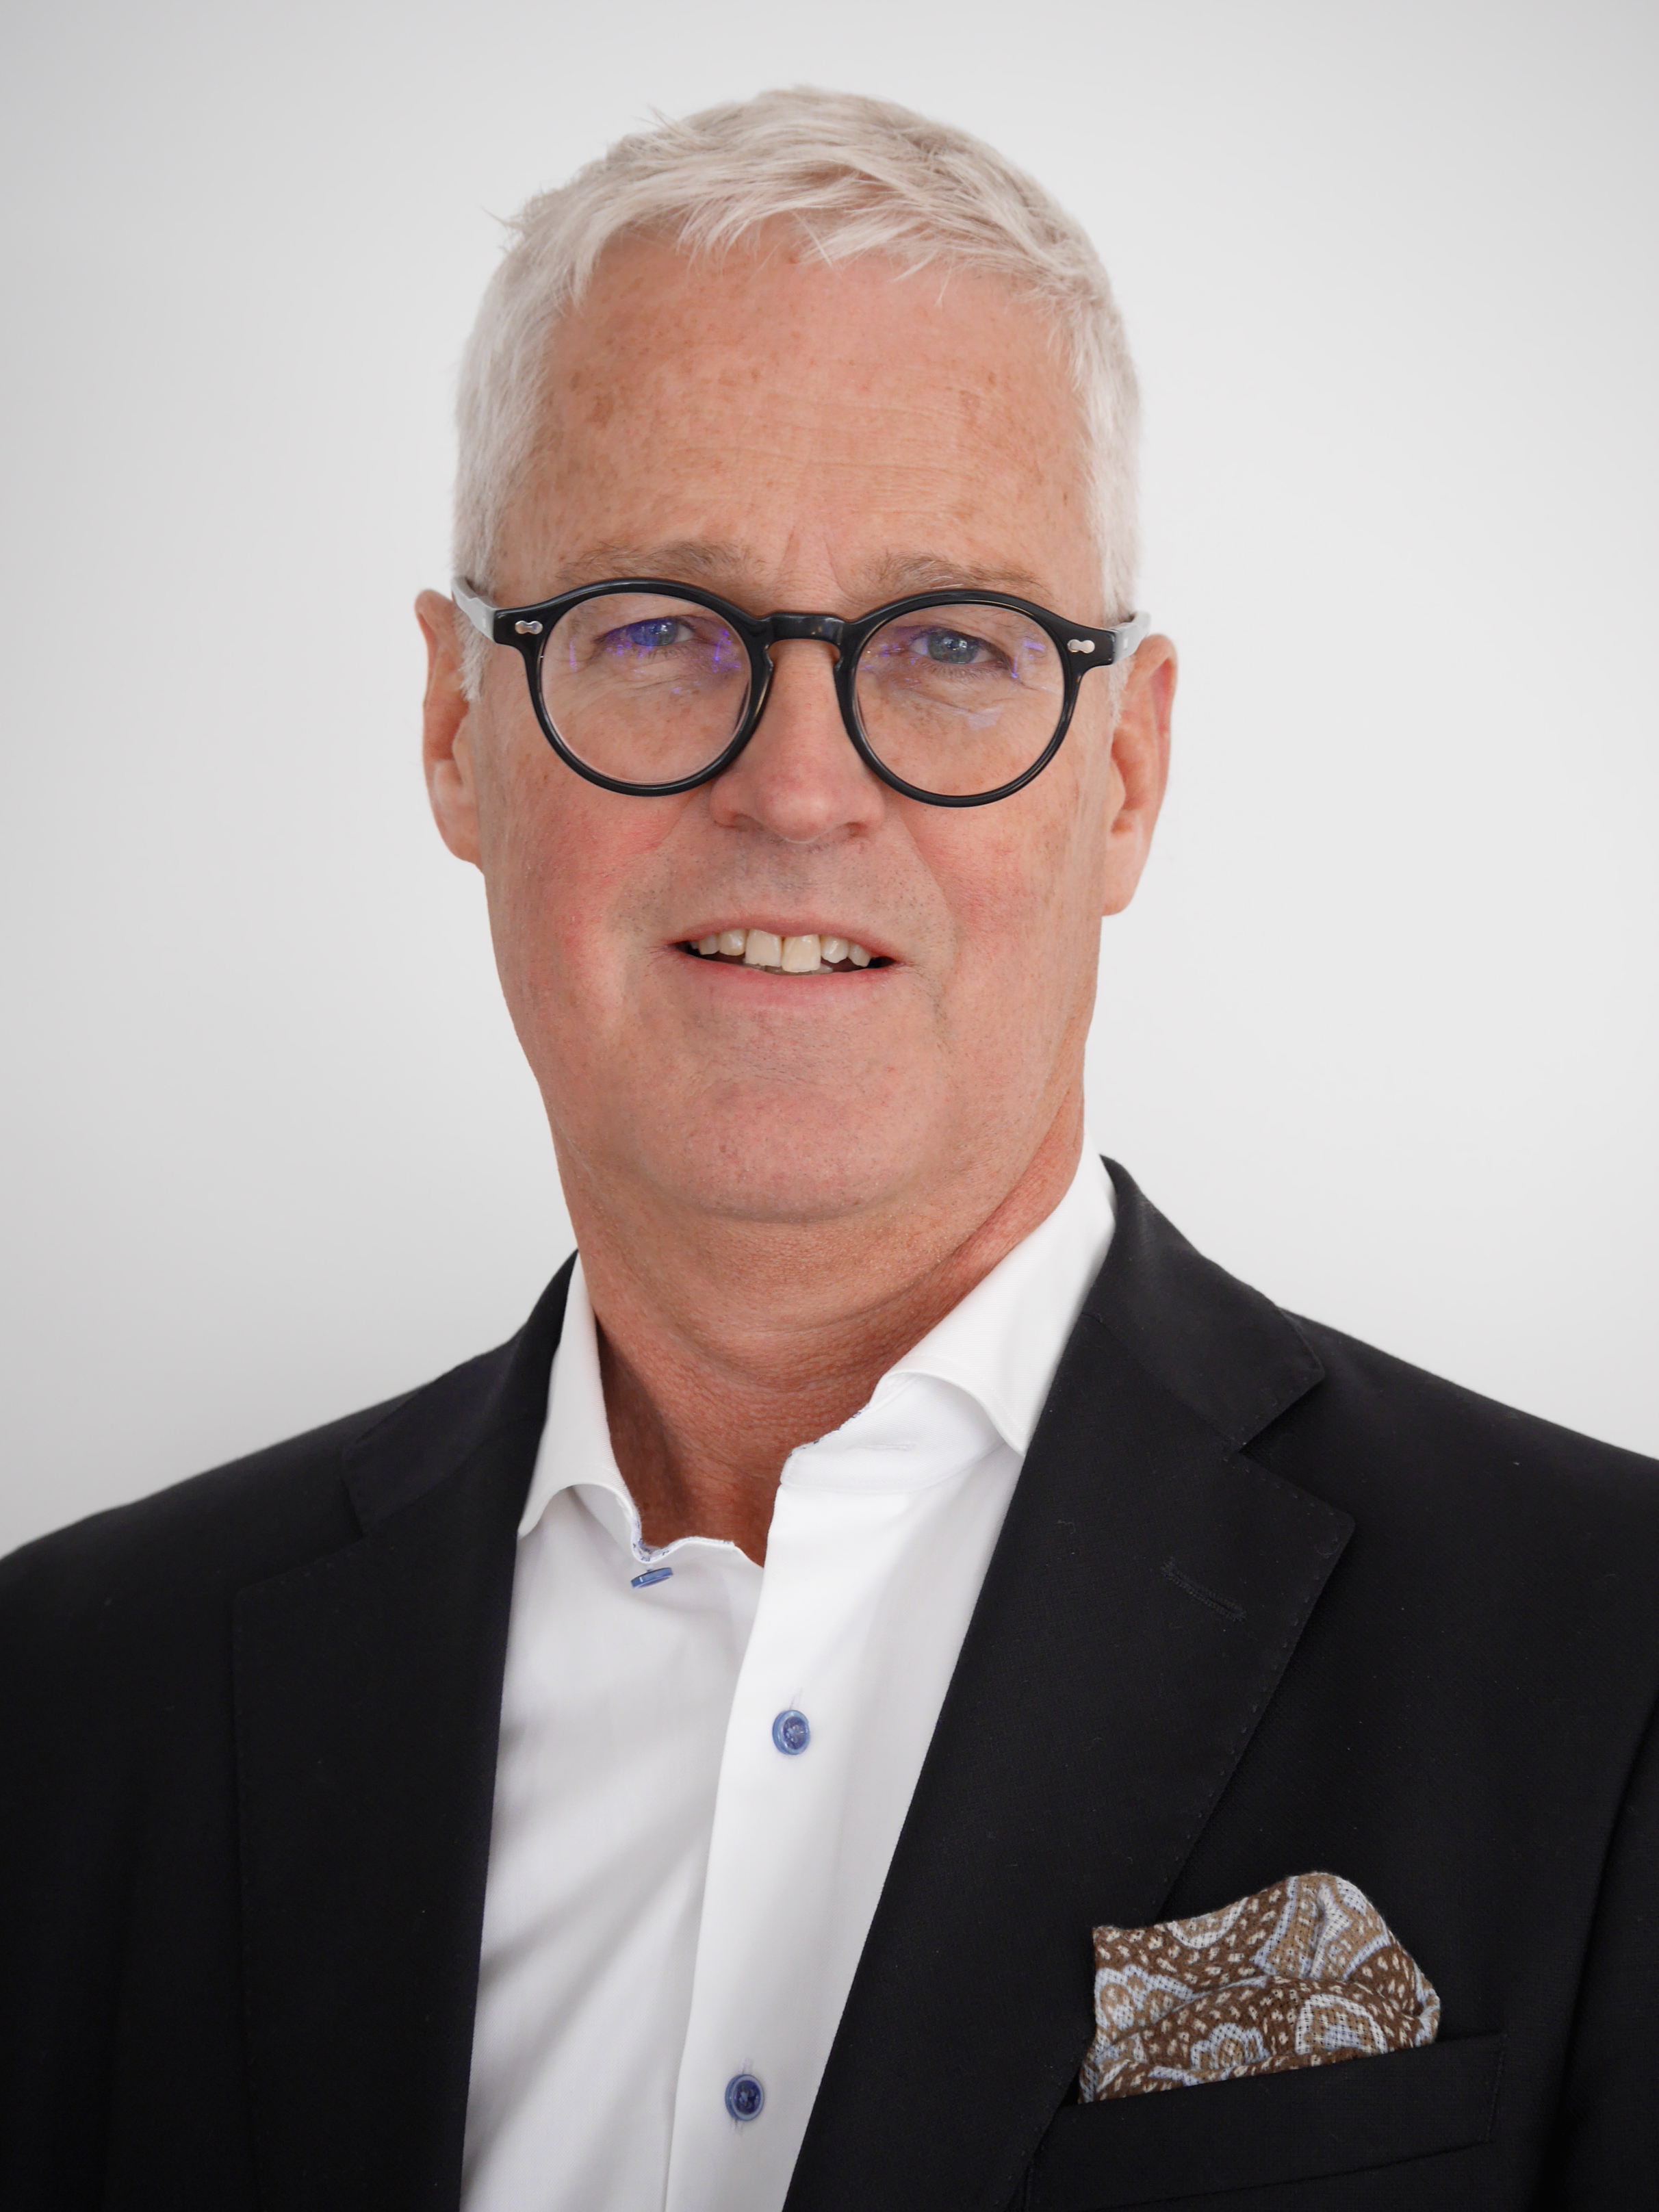 Lars Carlsson - • General Manager Automotive Audio at Dirac• More than 25 years of experience in NVH, simulations and testing in different leadership positions, including several years of sales of software and advanced test equipment